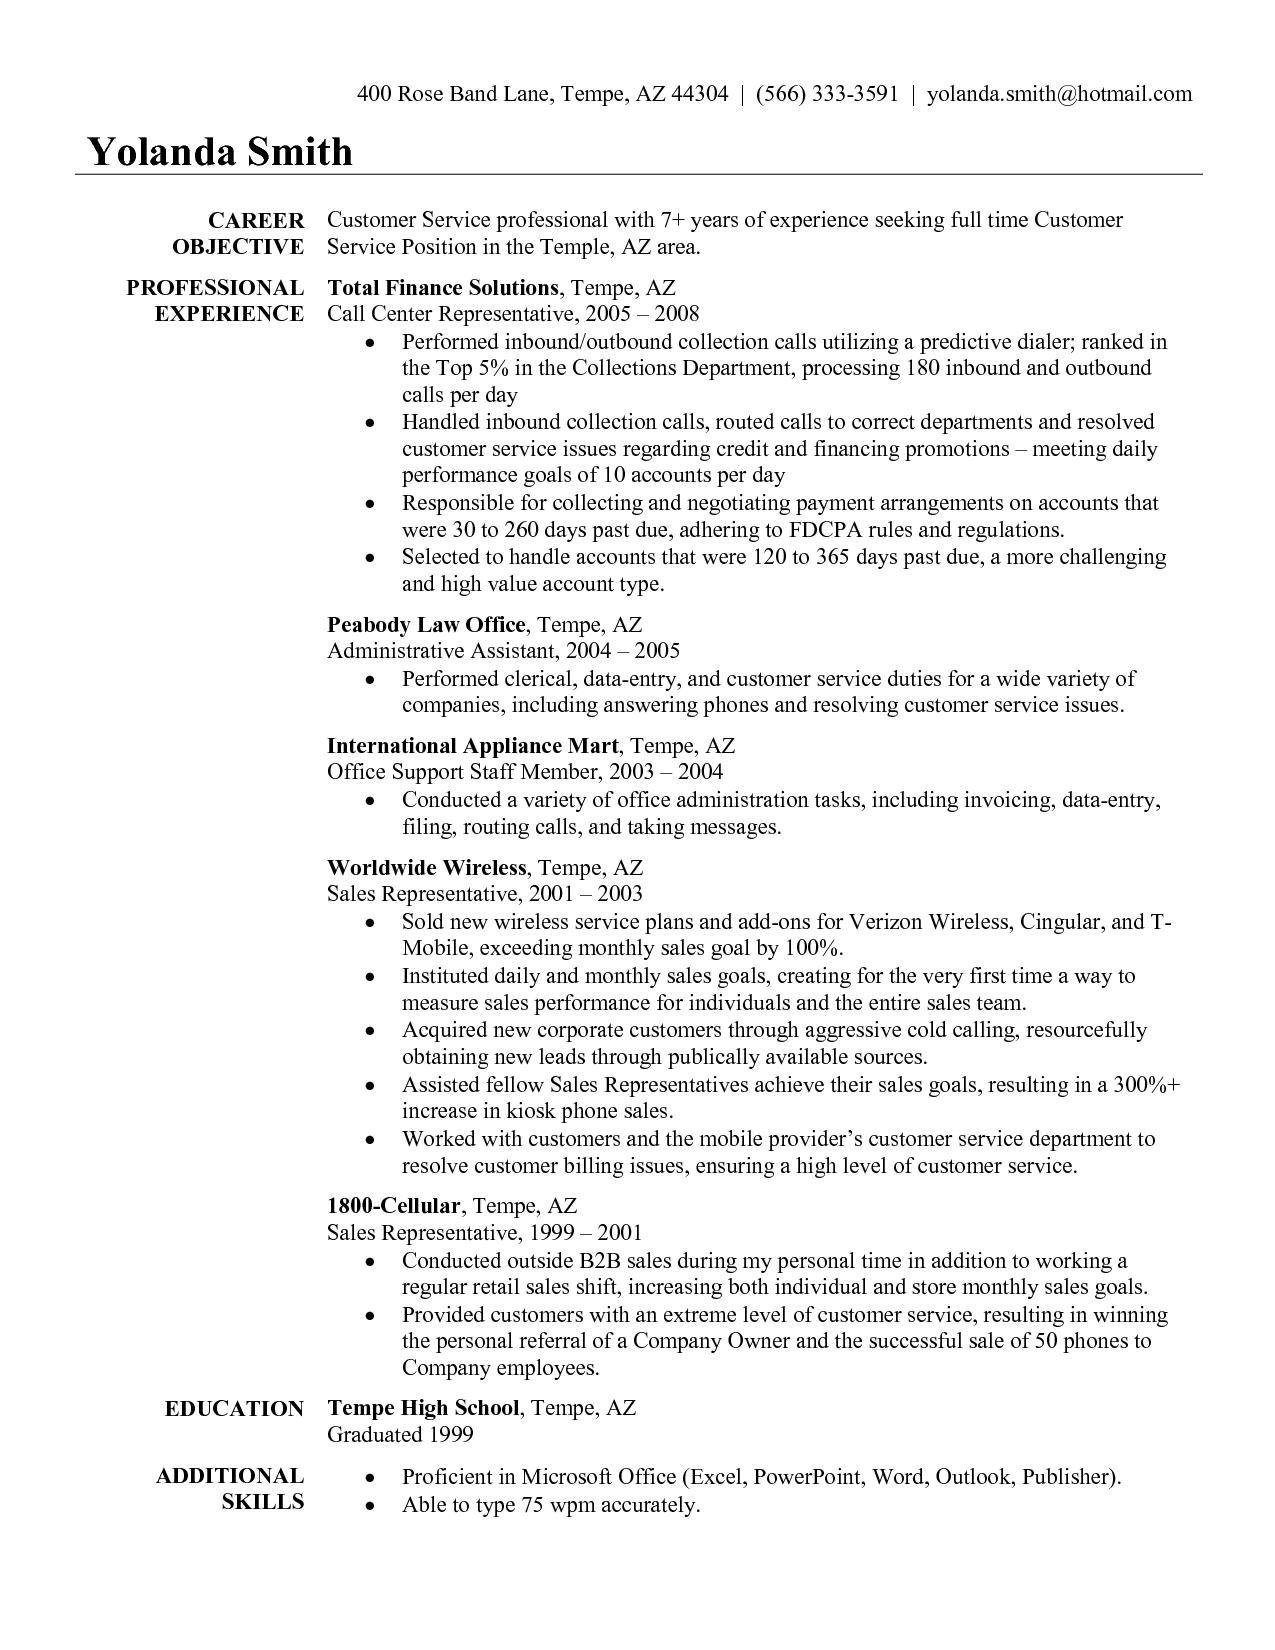 Resume Objective Customer Service Traffic Customer Resume Examplescustomer Service Resume Examples